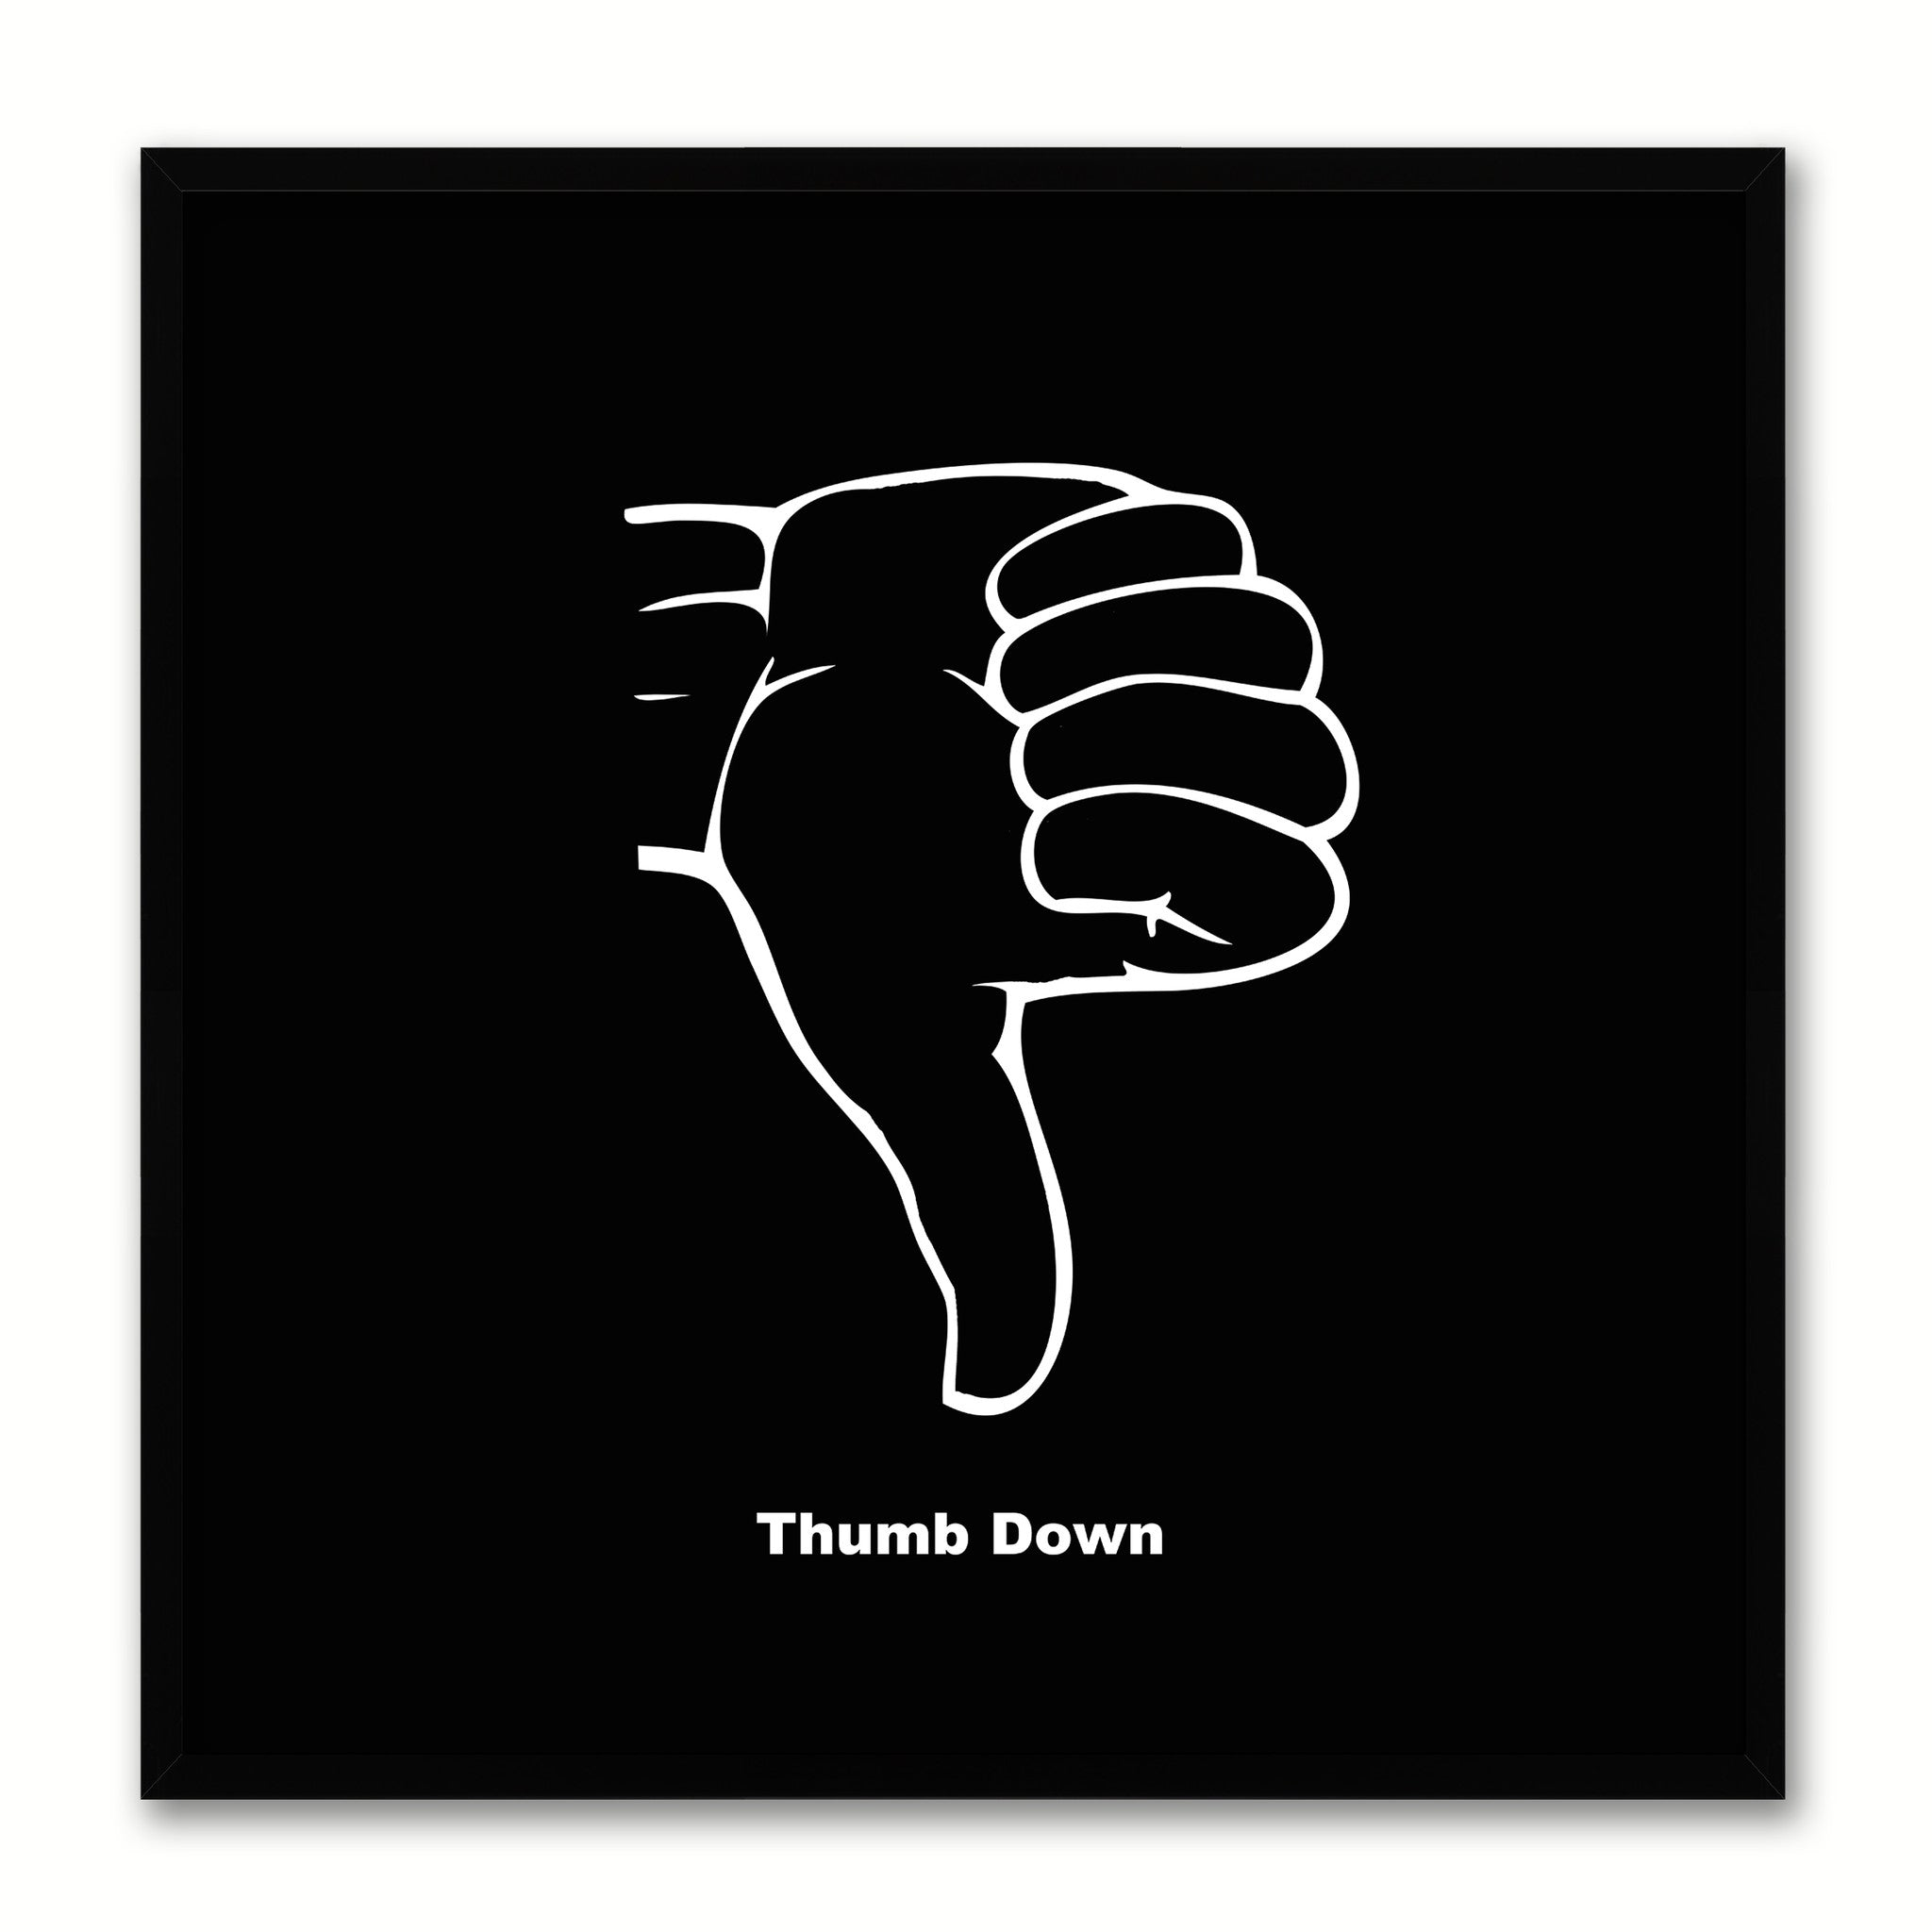 Thumbs Down Social Media Icon Canvas Print Picture Frame Wall Art Home Decor